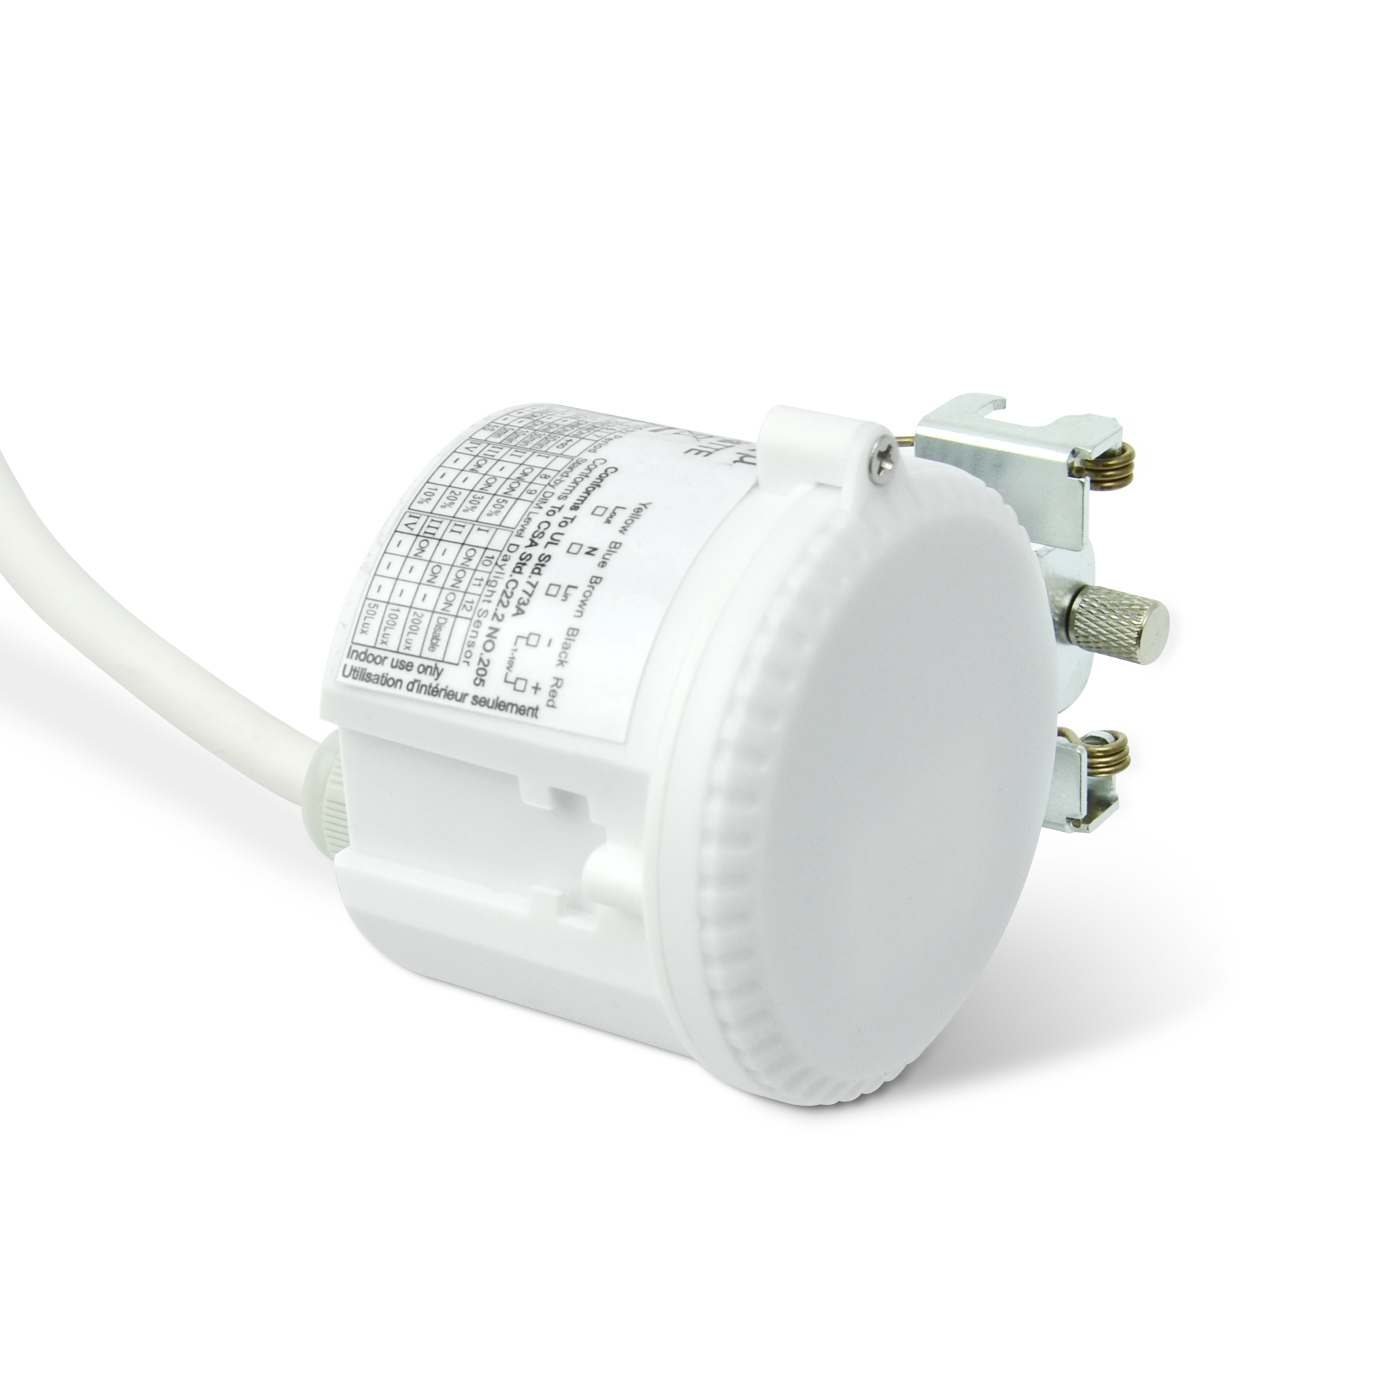 [out of stock]120-277VAC ON/OFF Control Sensor